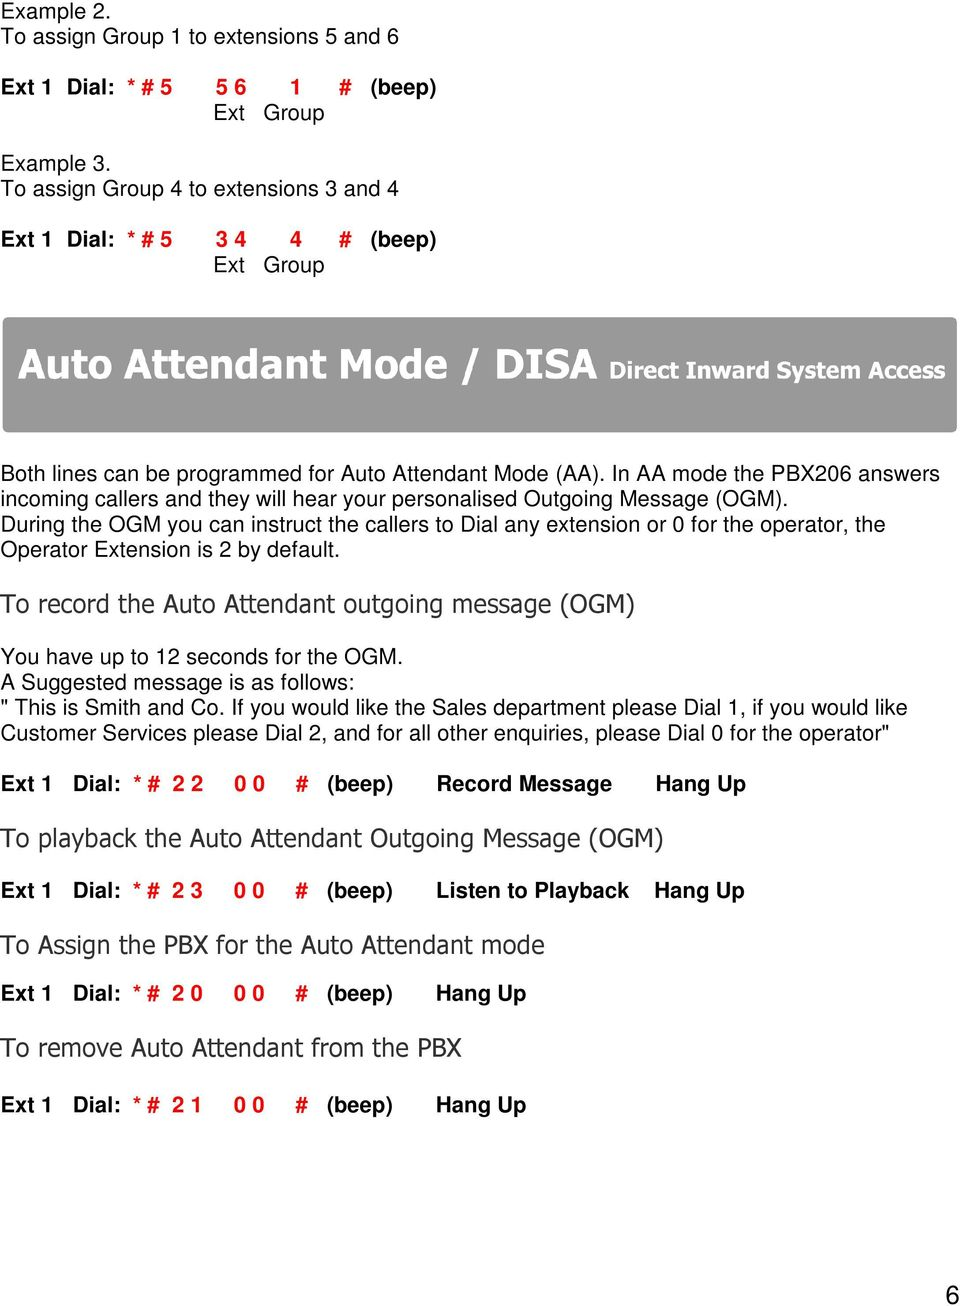 In AA mode the PBX206 answers incoming callers and they will hear your personalised Outgoing Message (OGM).